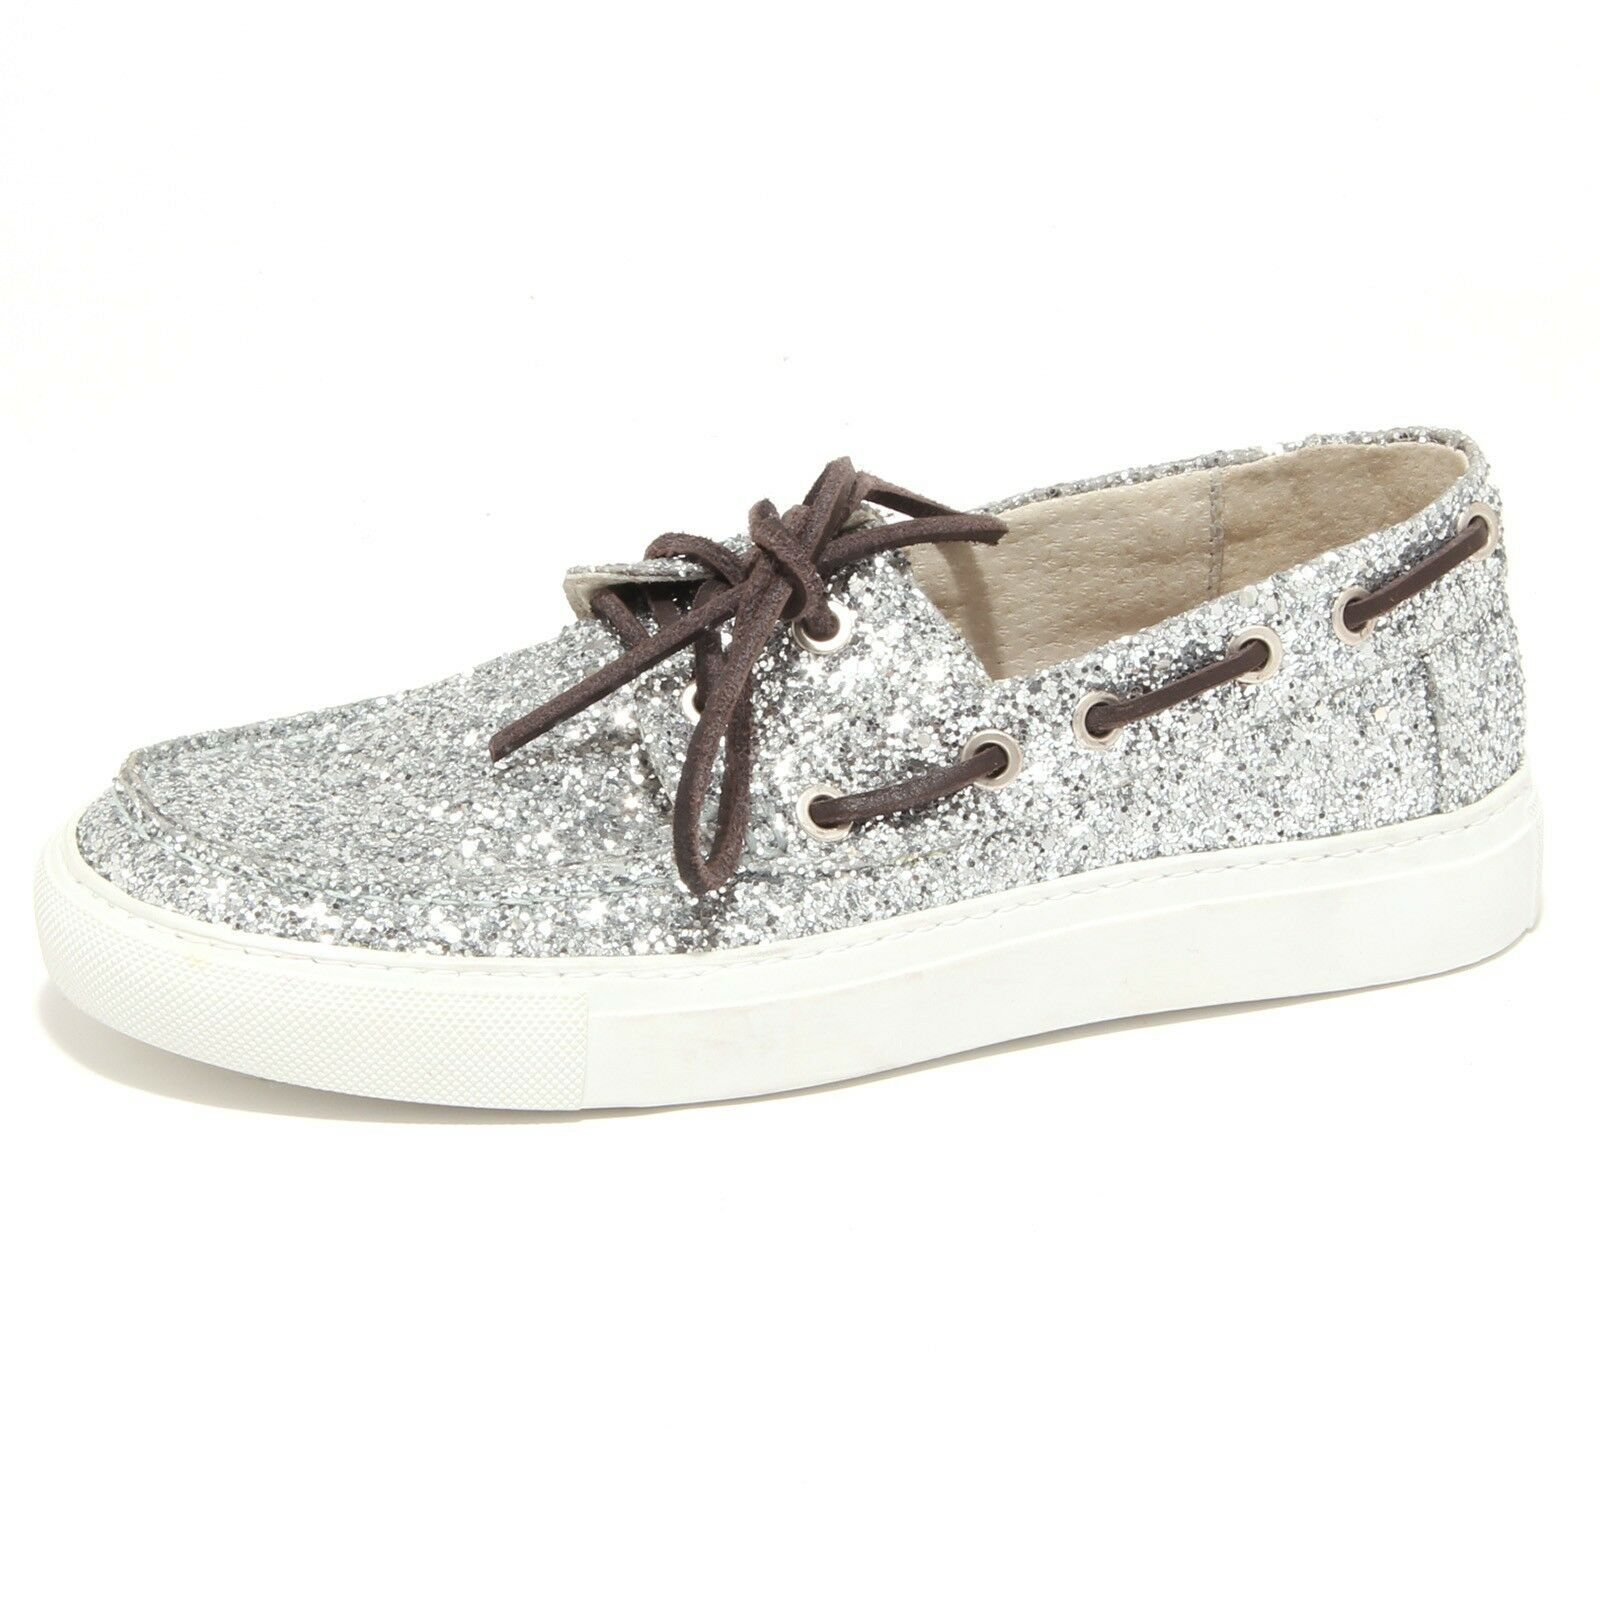 5378O mocassino donna P448 argento shoe woman glitter